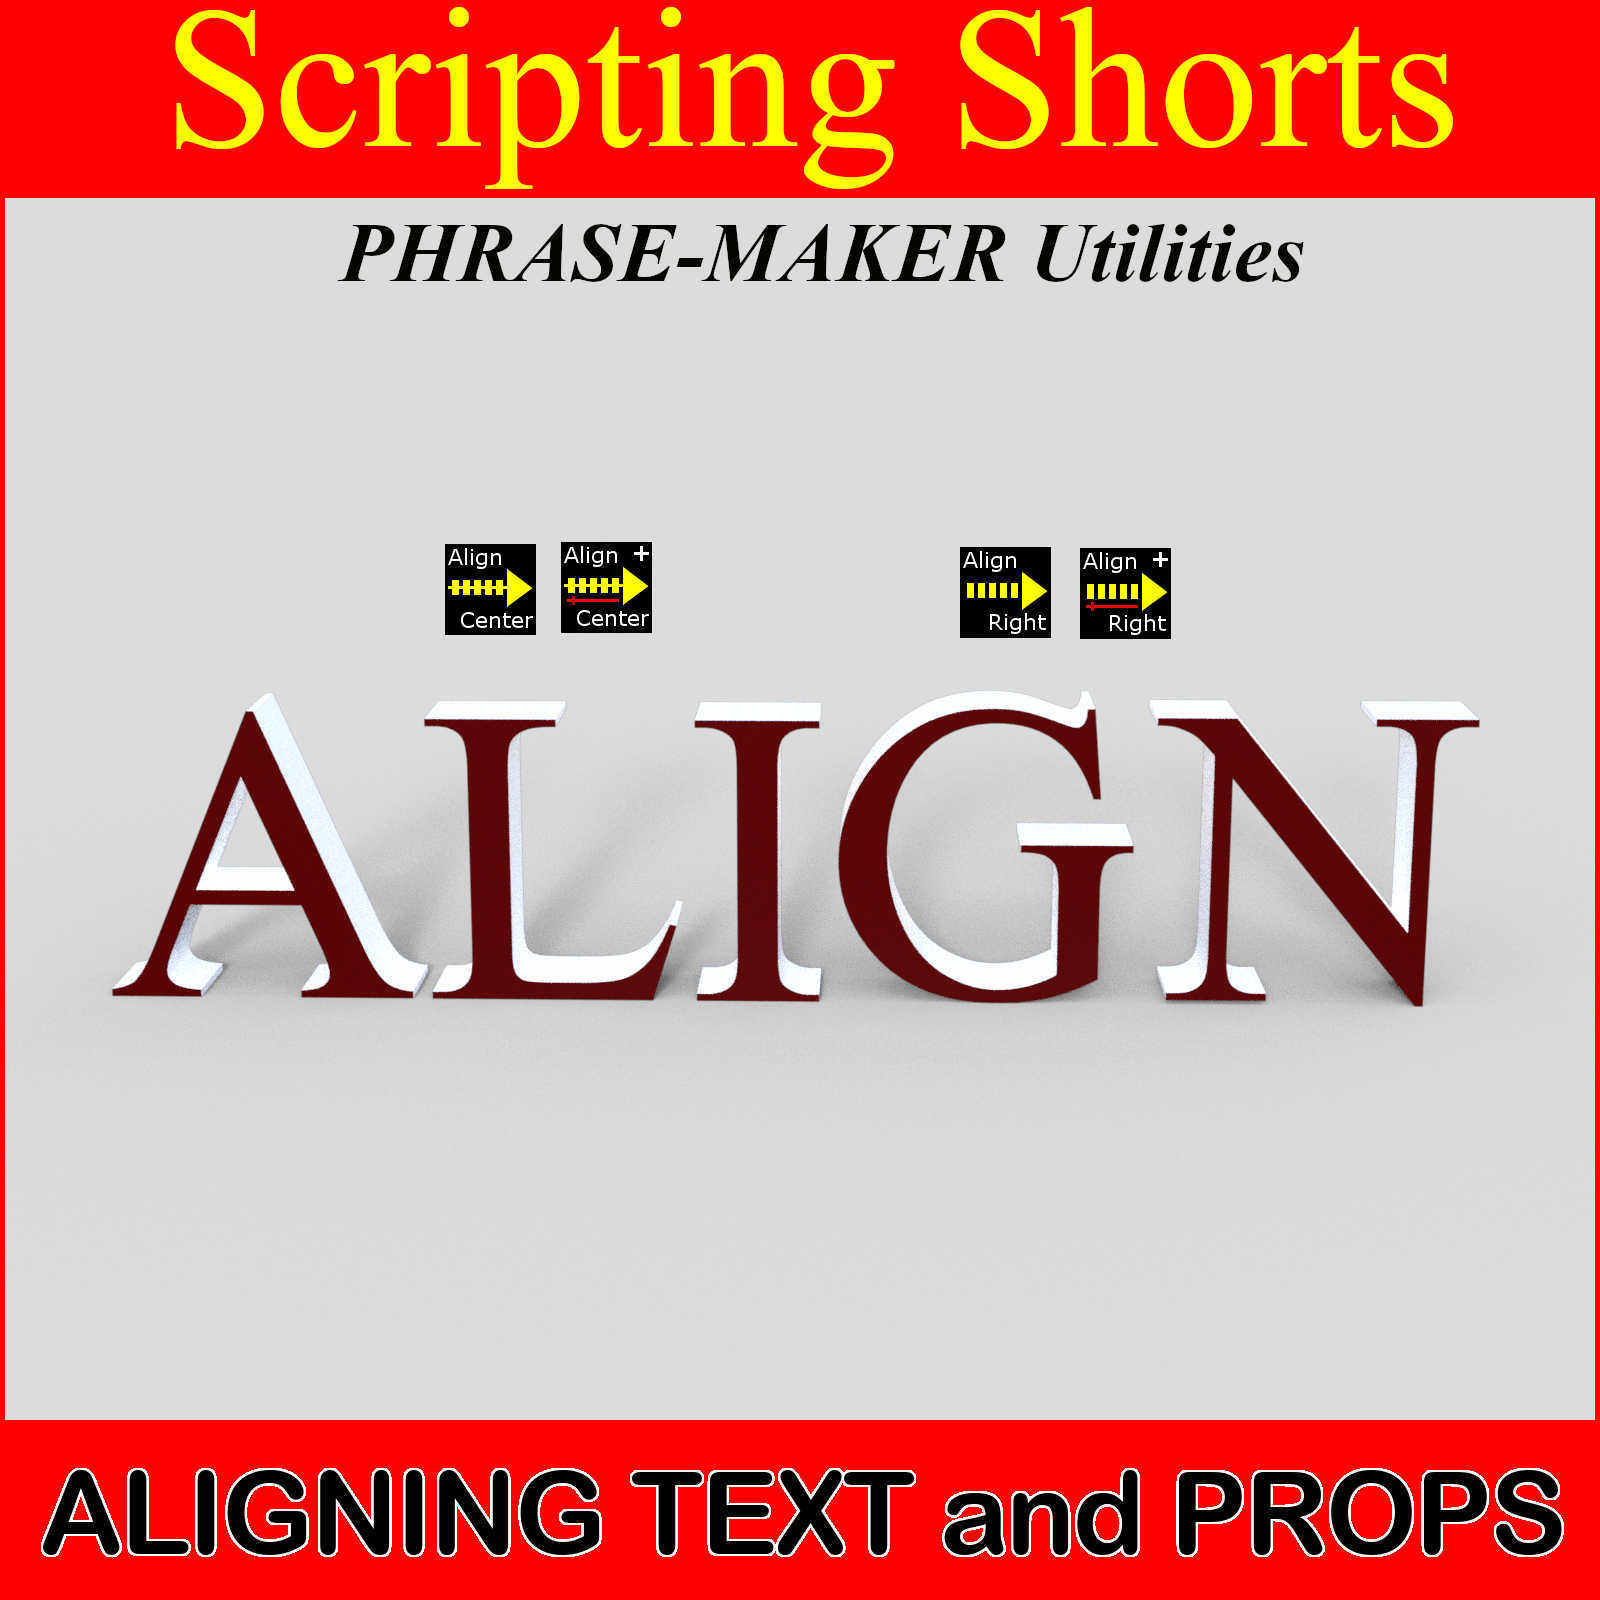 SCRIPTING SHORTS Aligning Text and Props (Phrase-Maker Utilities)